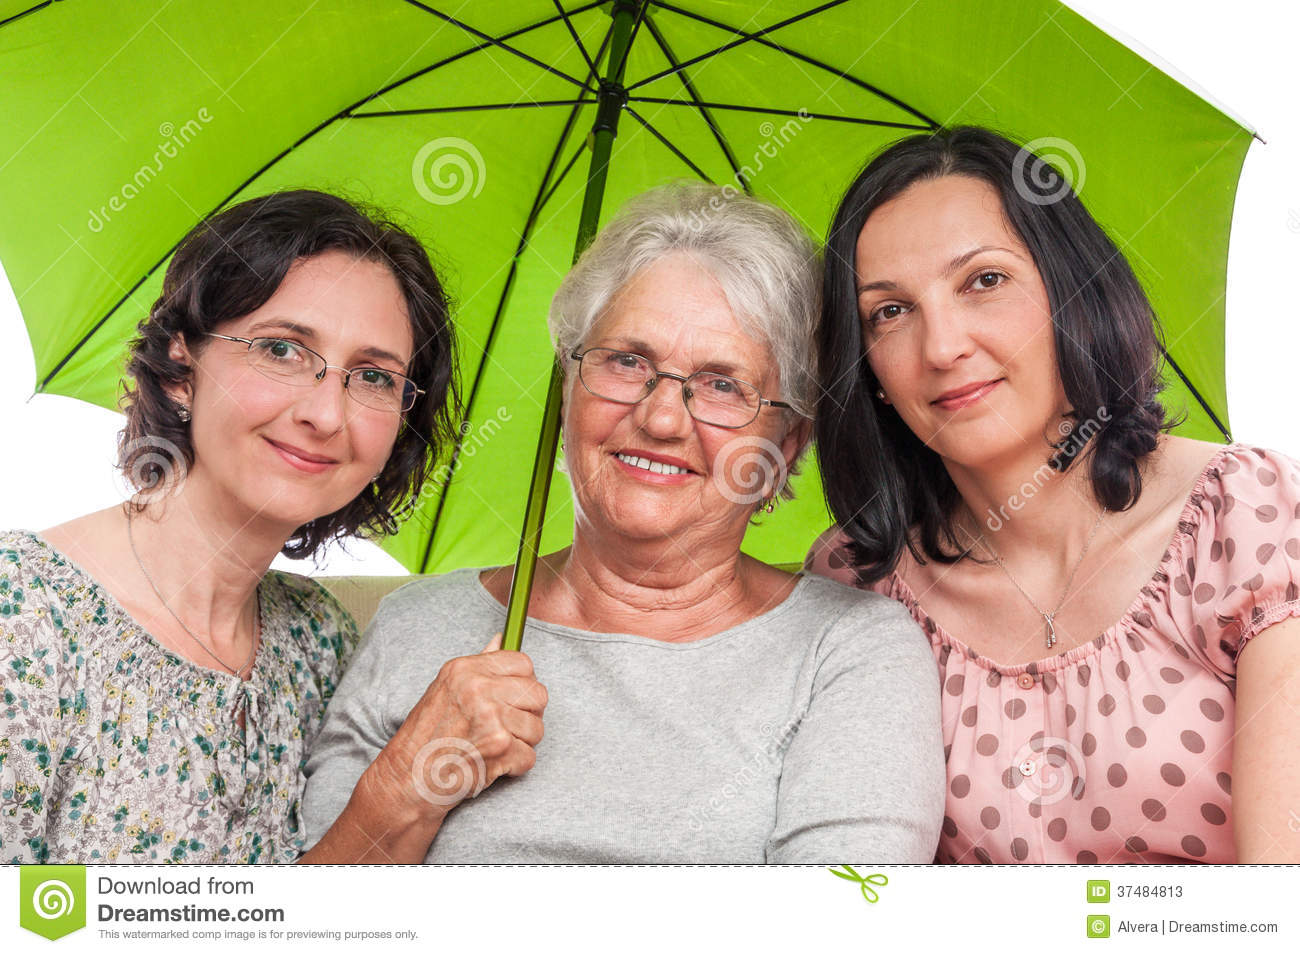 Know the three daughters adult this great